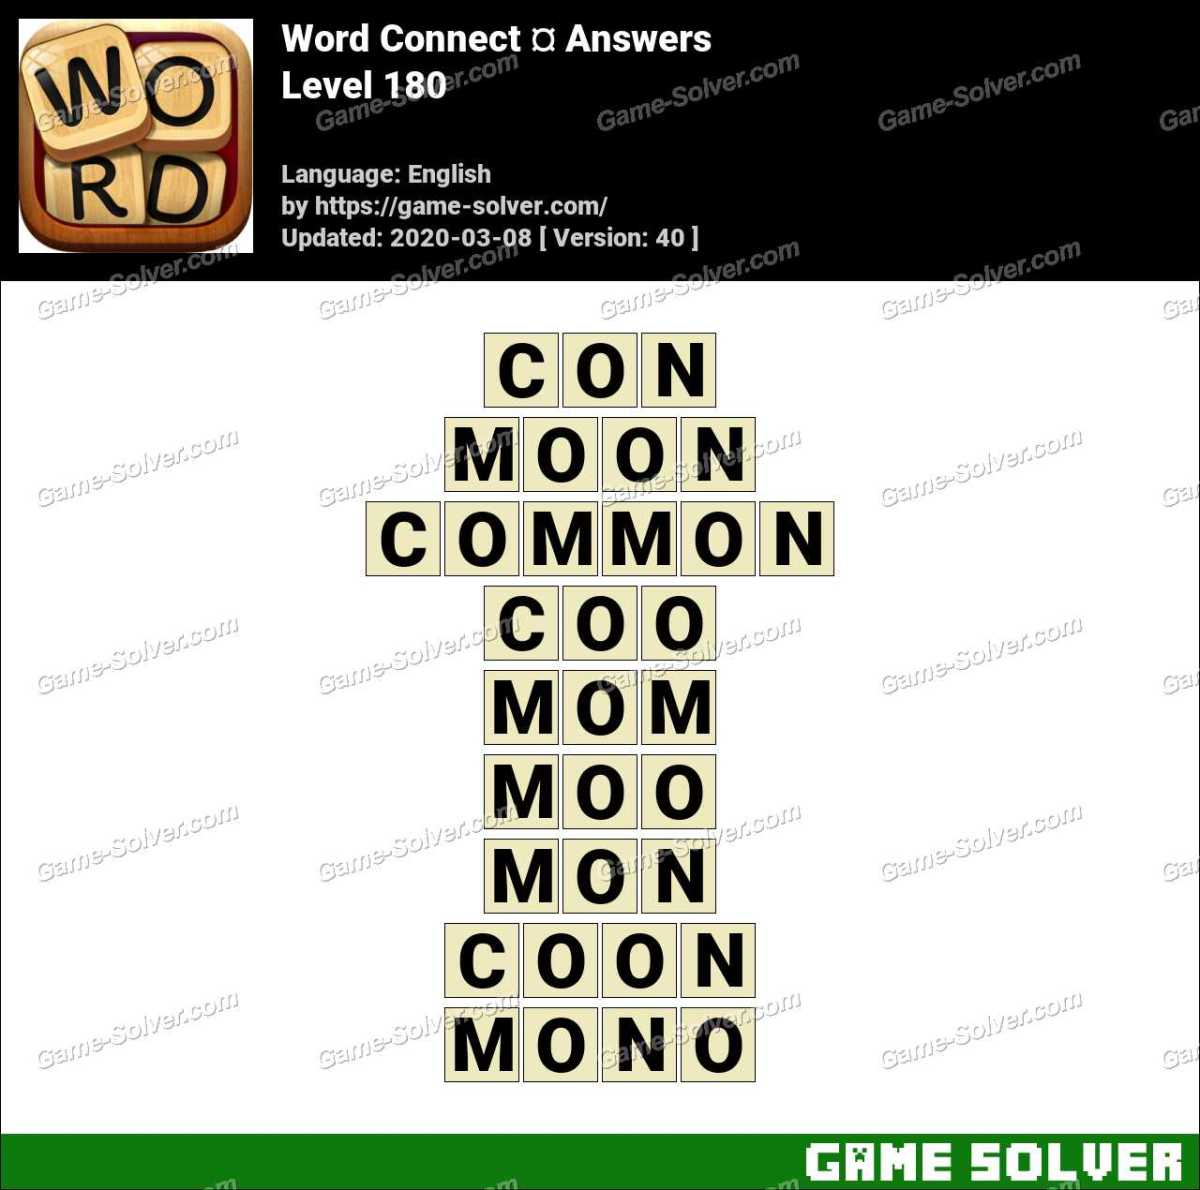 Word Connect Level 180 Answers